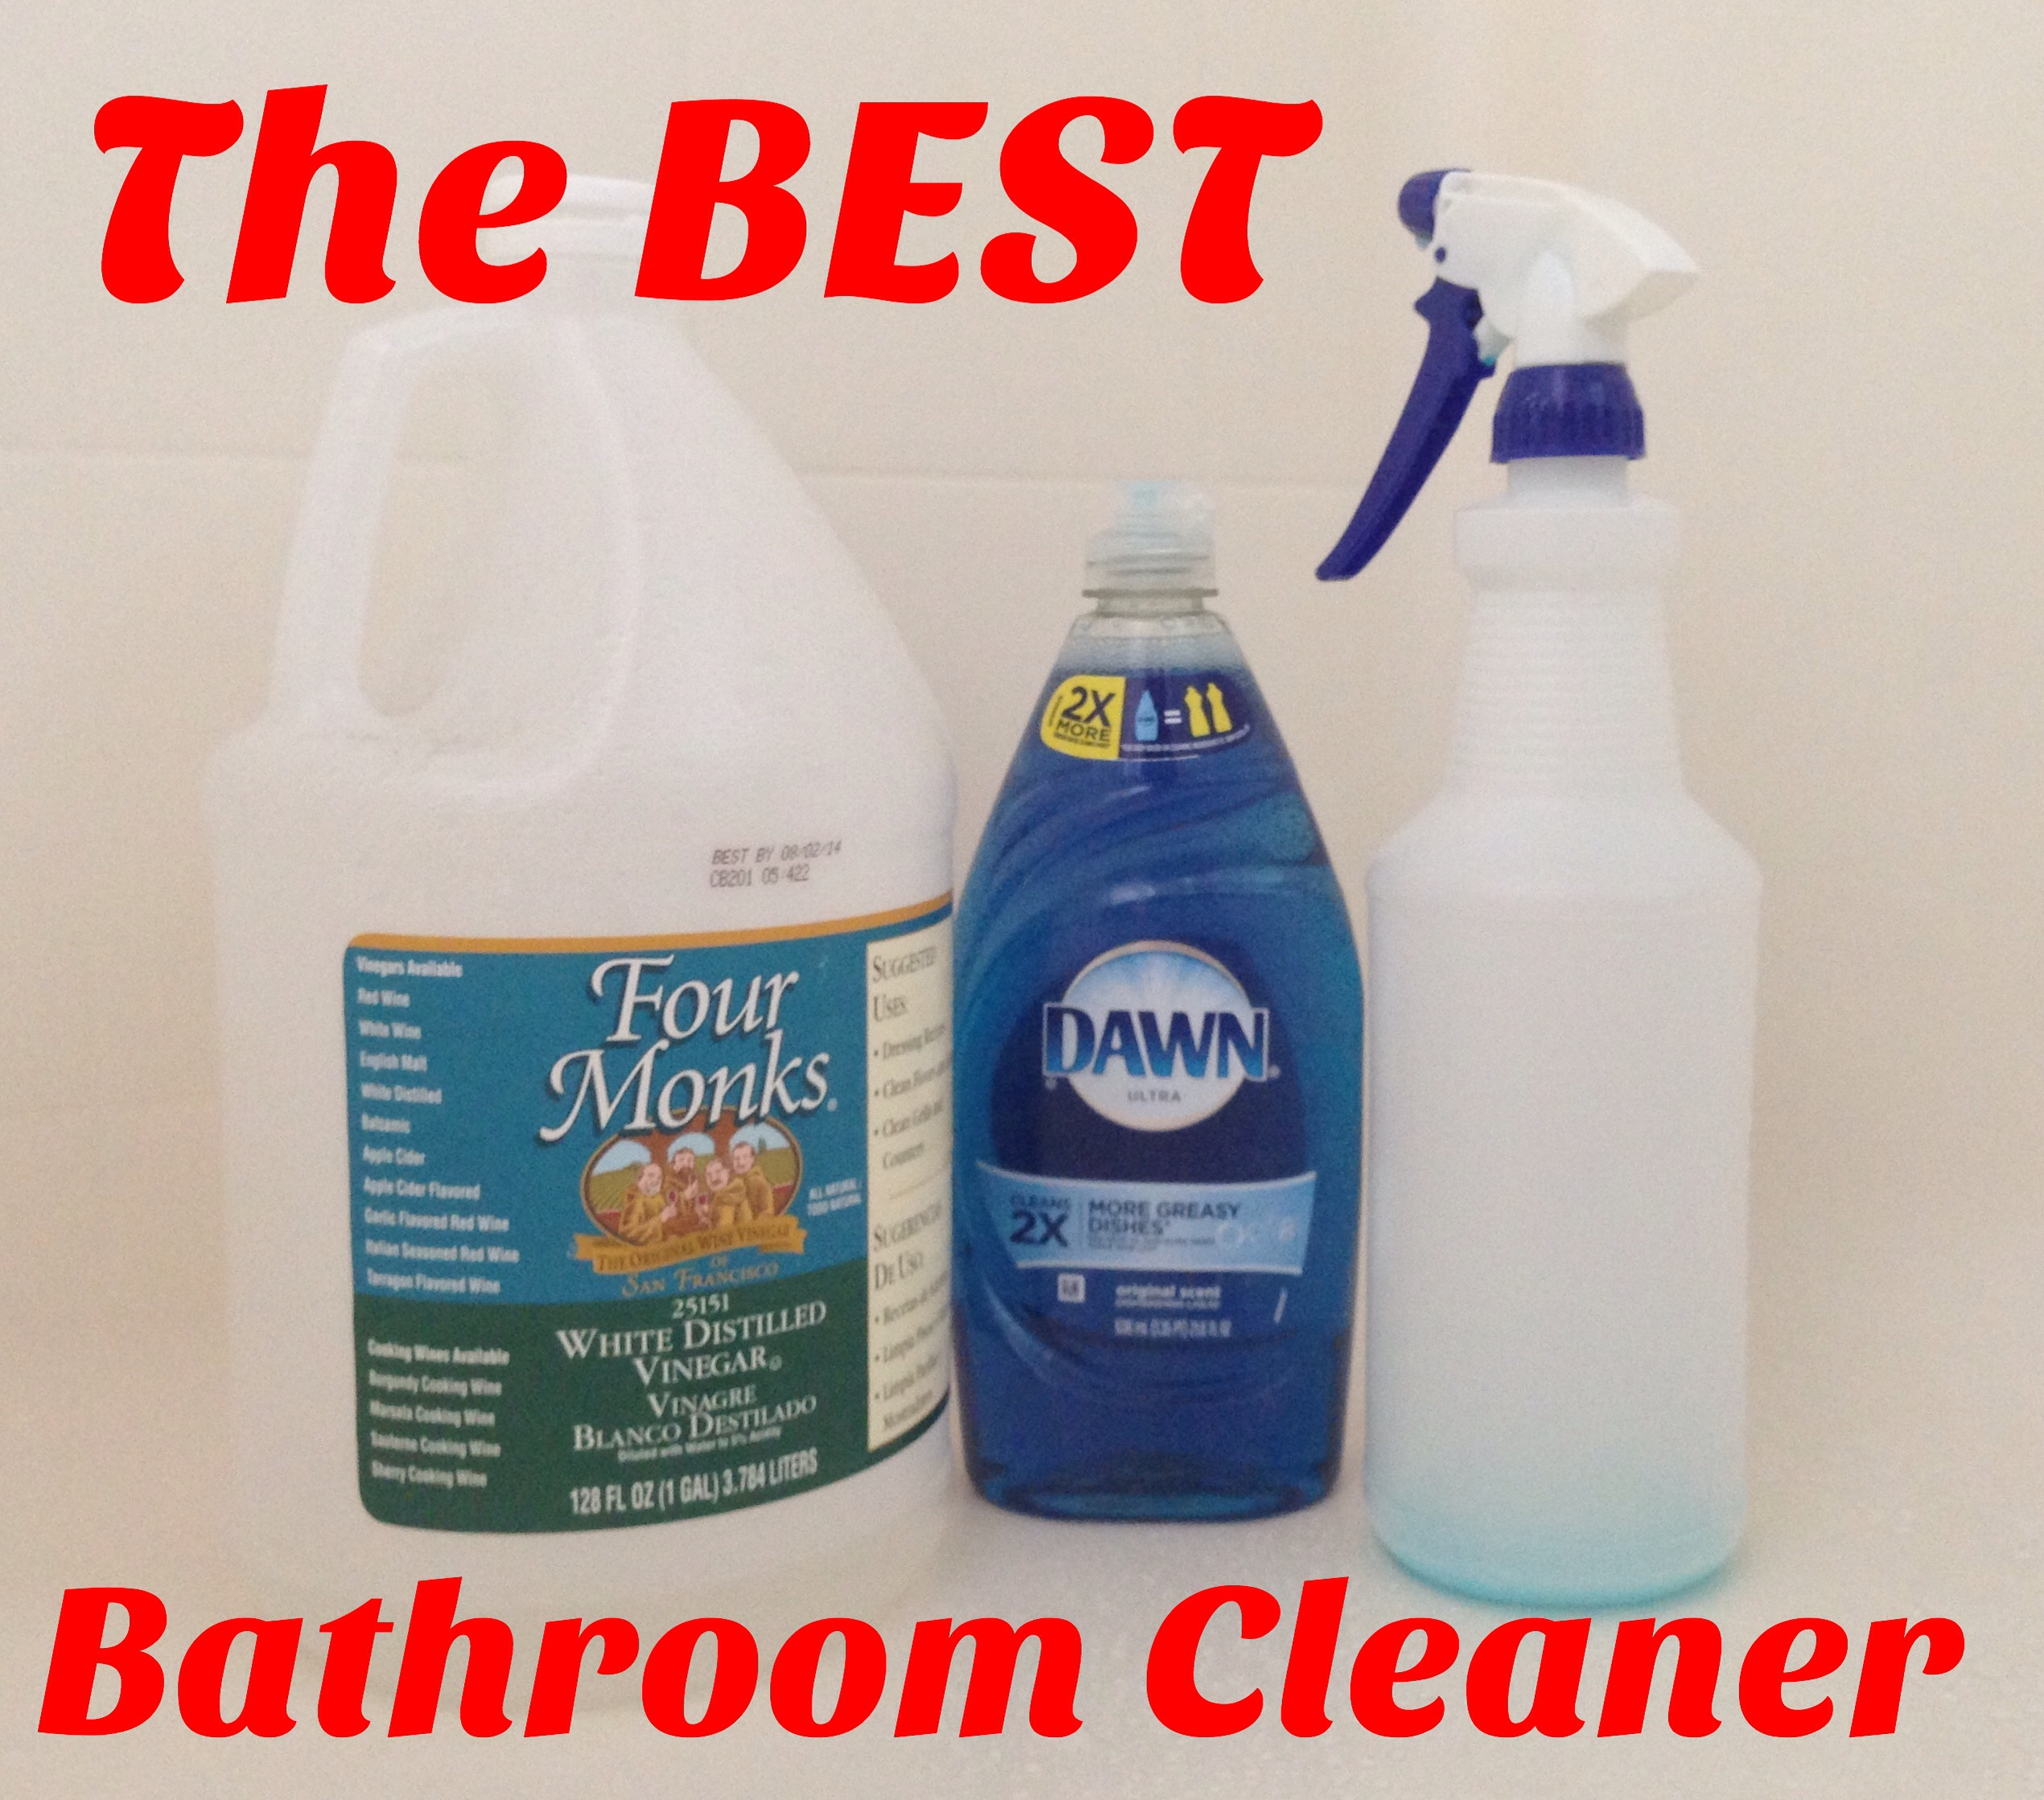 Best Cleaner For Bathroom Of The Best Bathroom Cleaner Mismashedmom